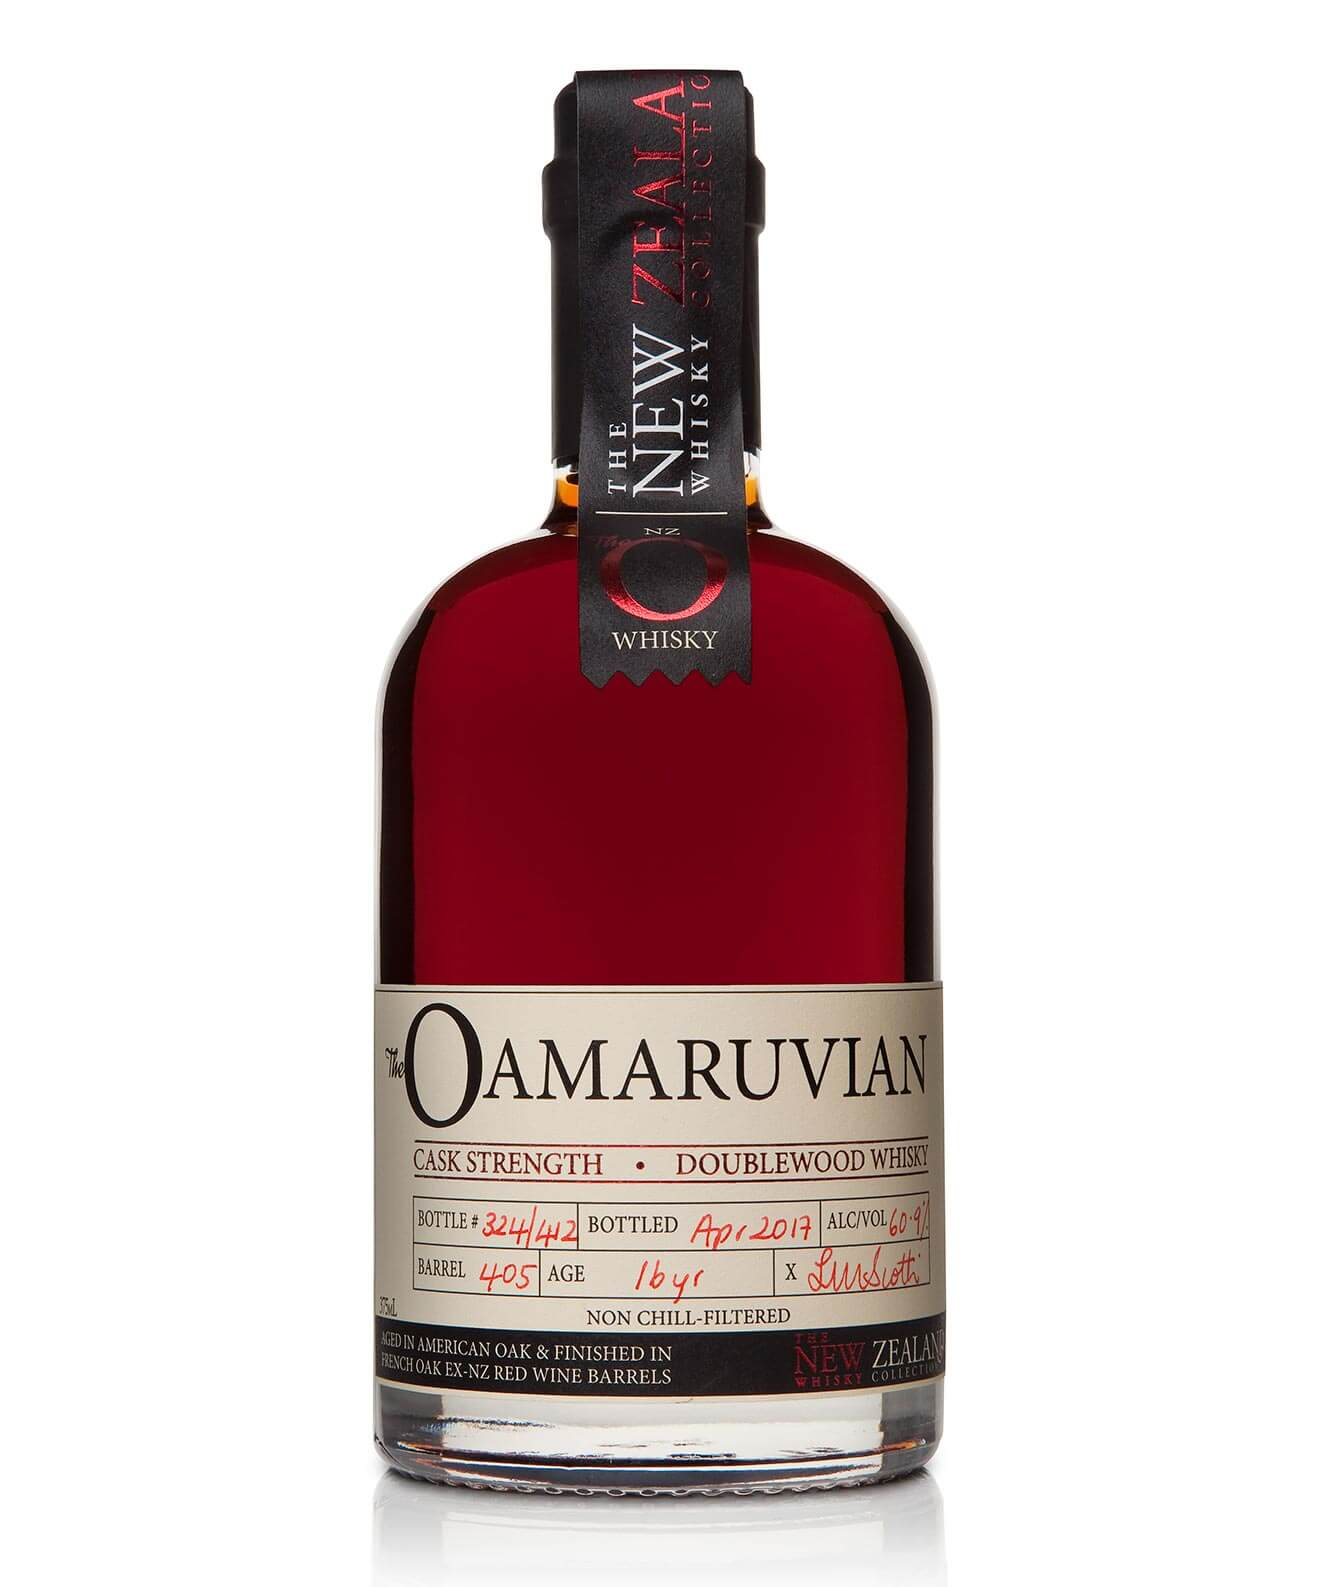 Oamaruvian 16 Year Old Cask Strength DoubleCask, bottle